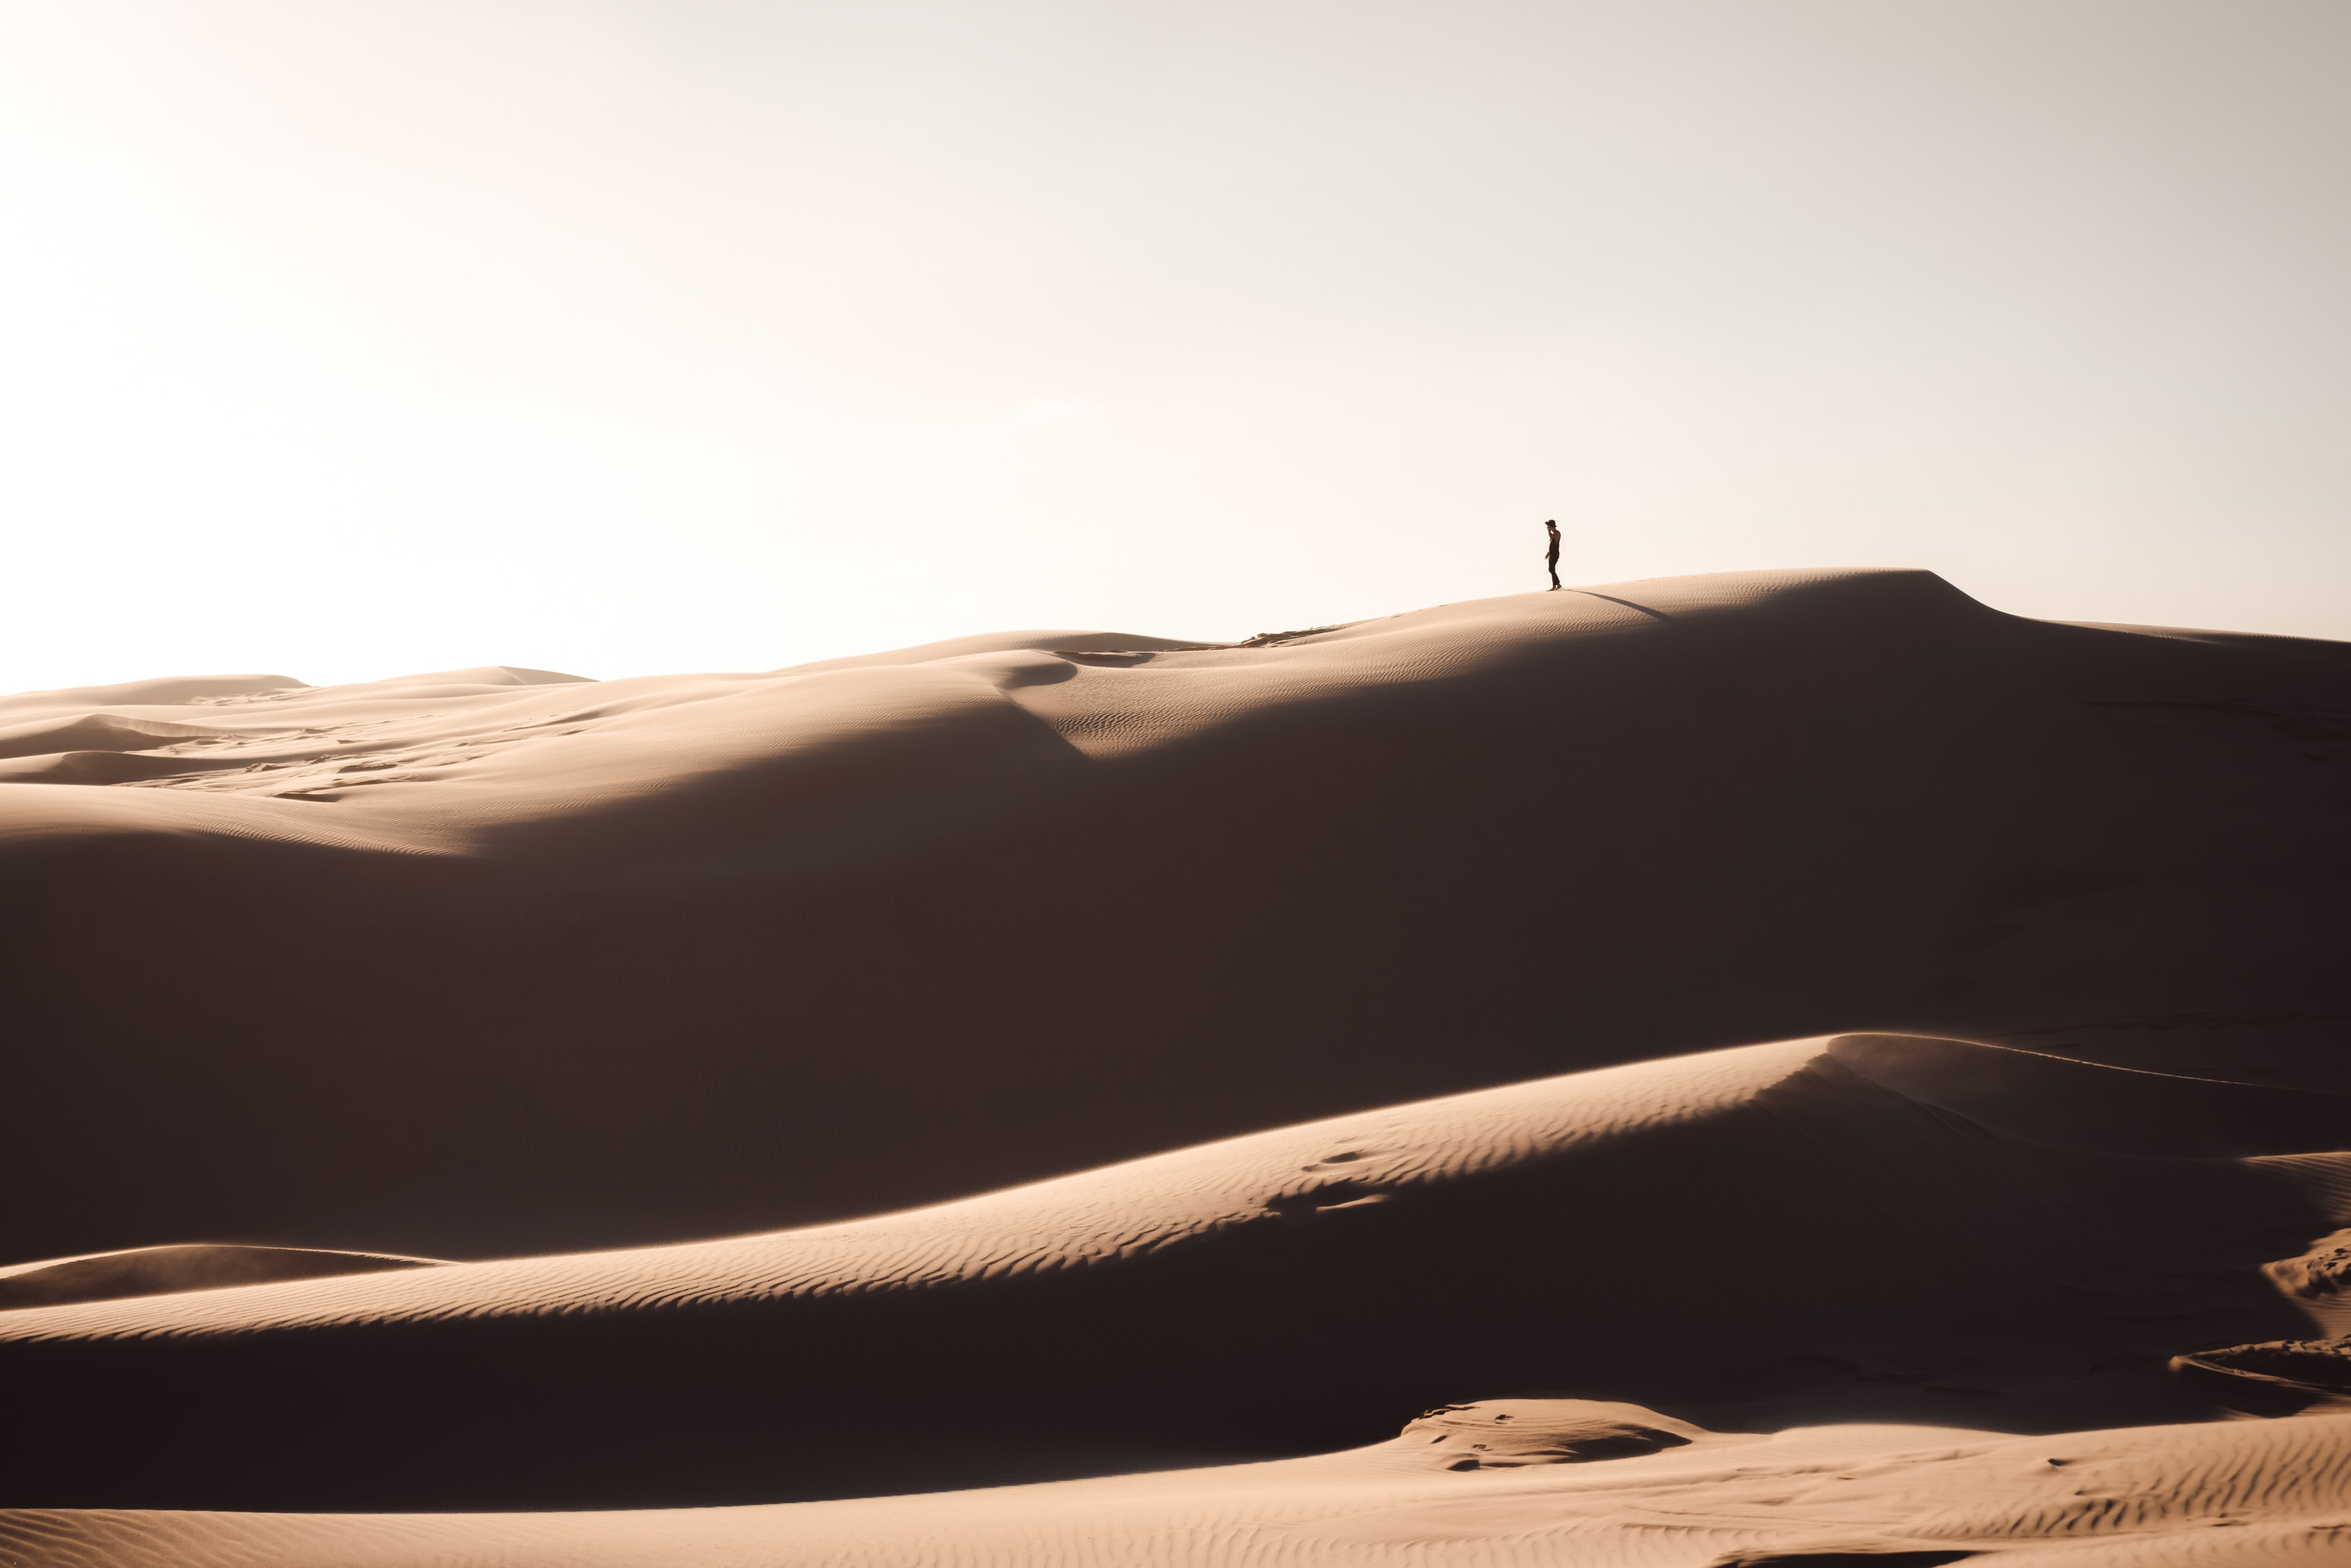 silhouette of person standing on brown sand